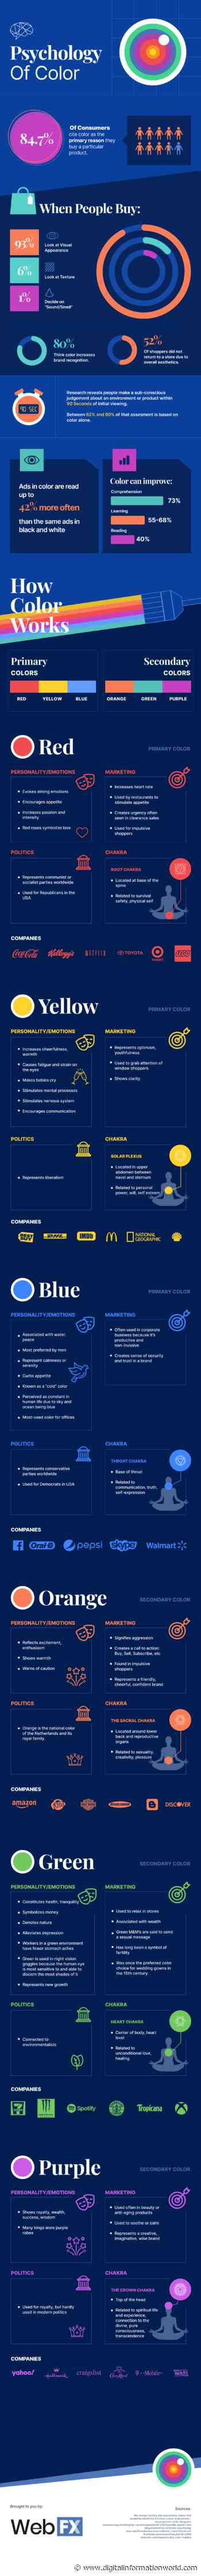 How Psychology Can Impact Your Color Decisions for Web Design (infographic) - Digital Information World